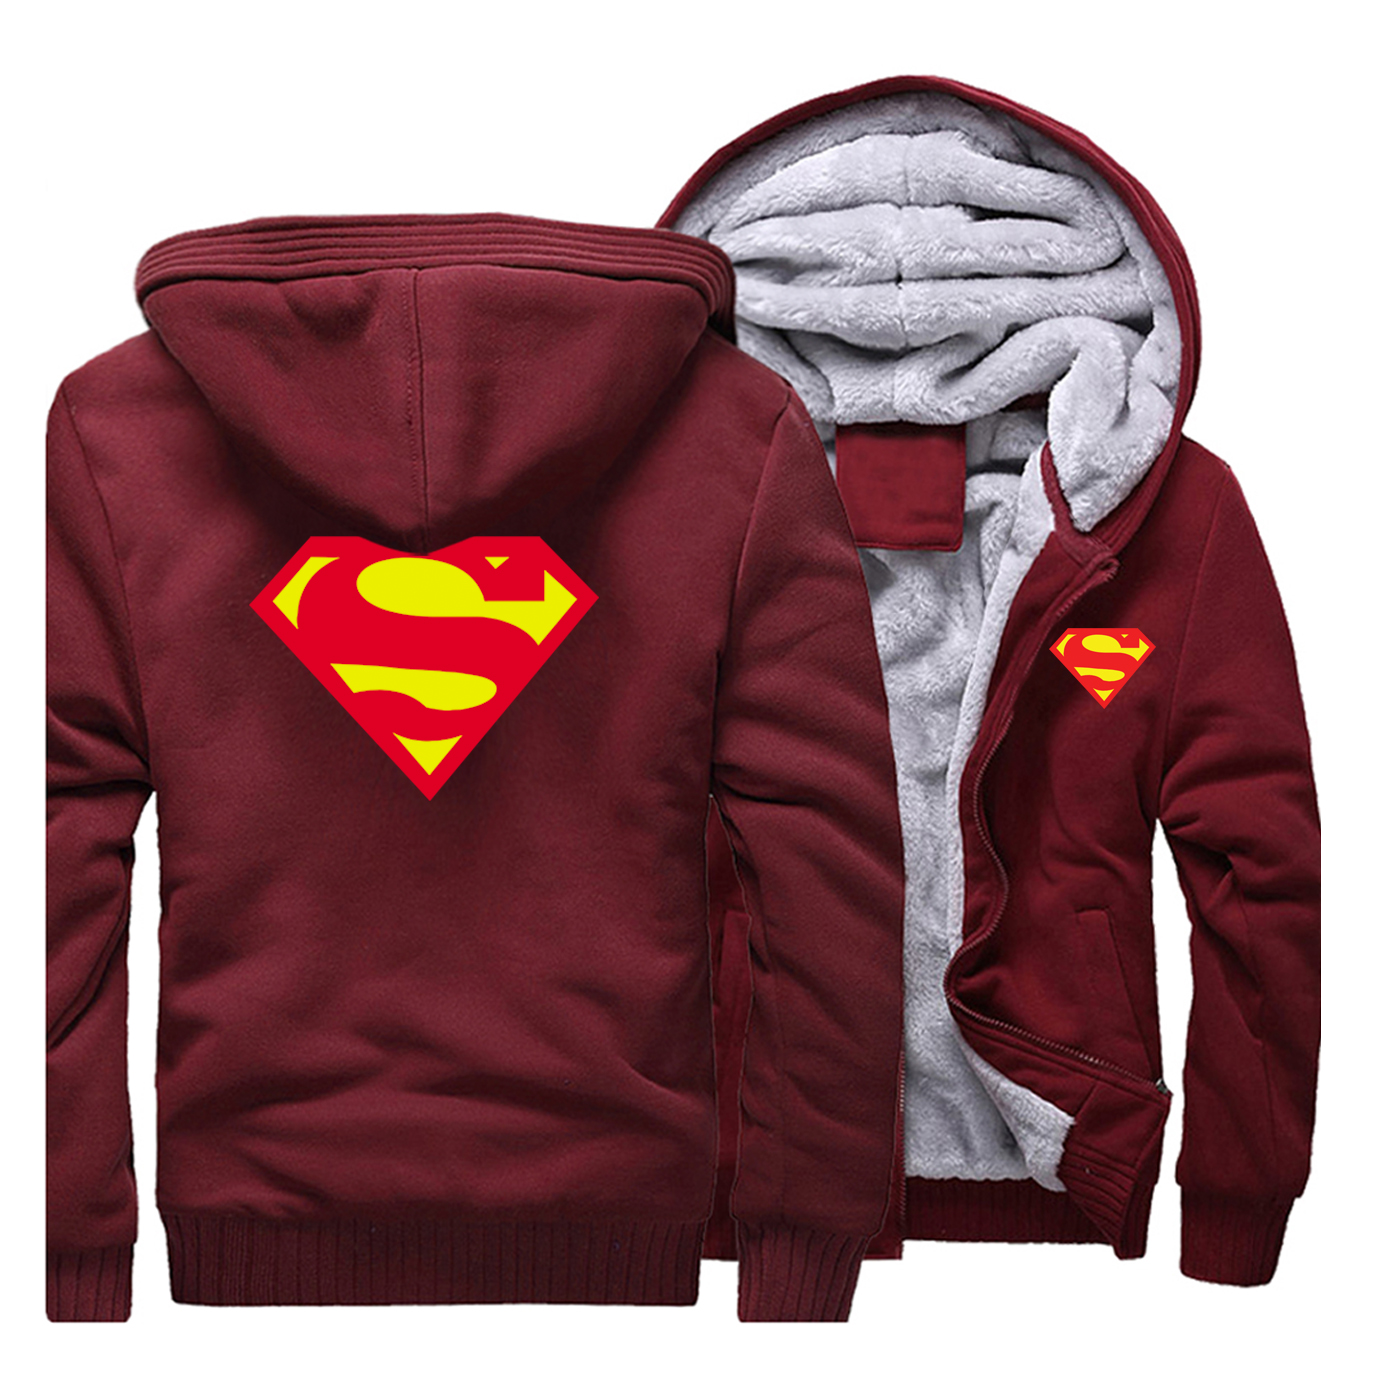 2019 Winter Men's Hoodies Superman Sweatshirt Quality Fleece Warm Streetwear Men Jacket Hot Sale Thick Coat Casual Man Clothing